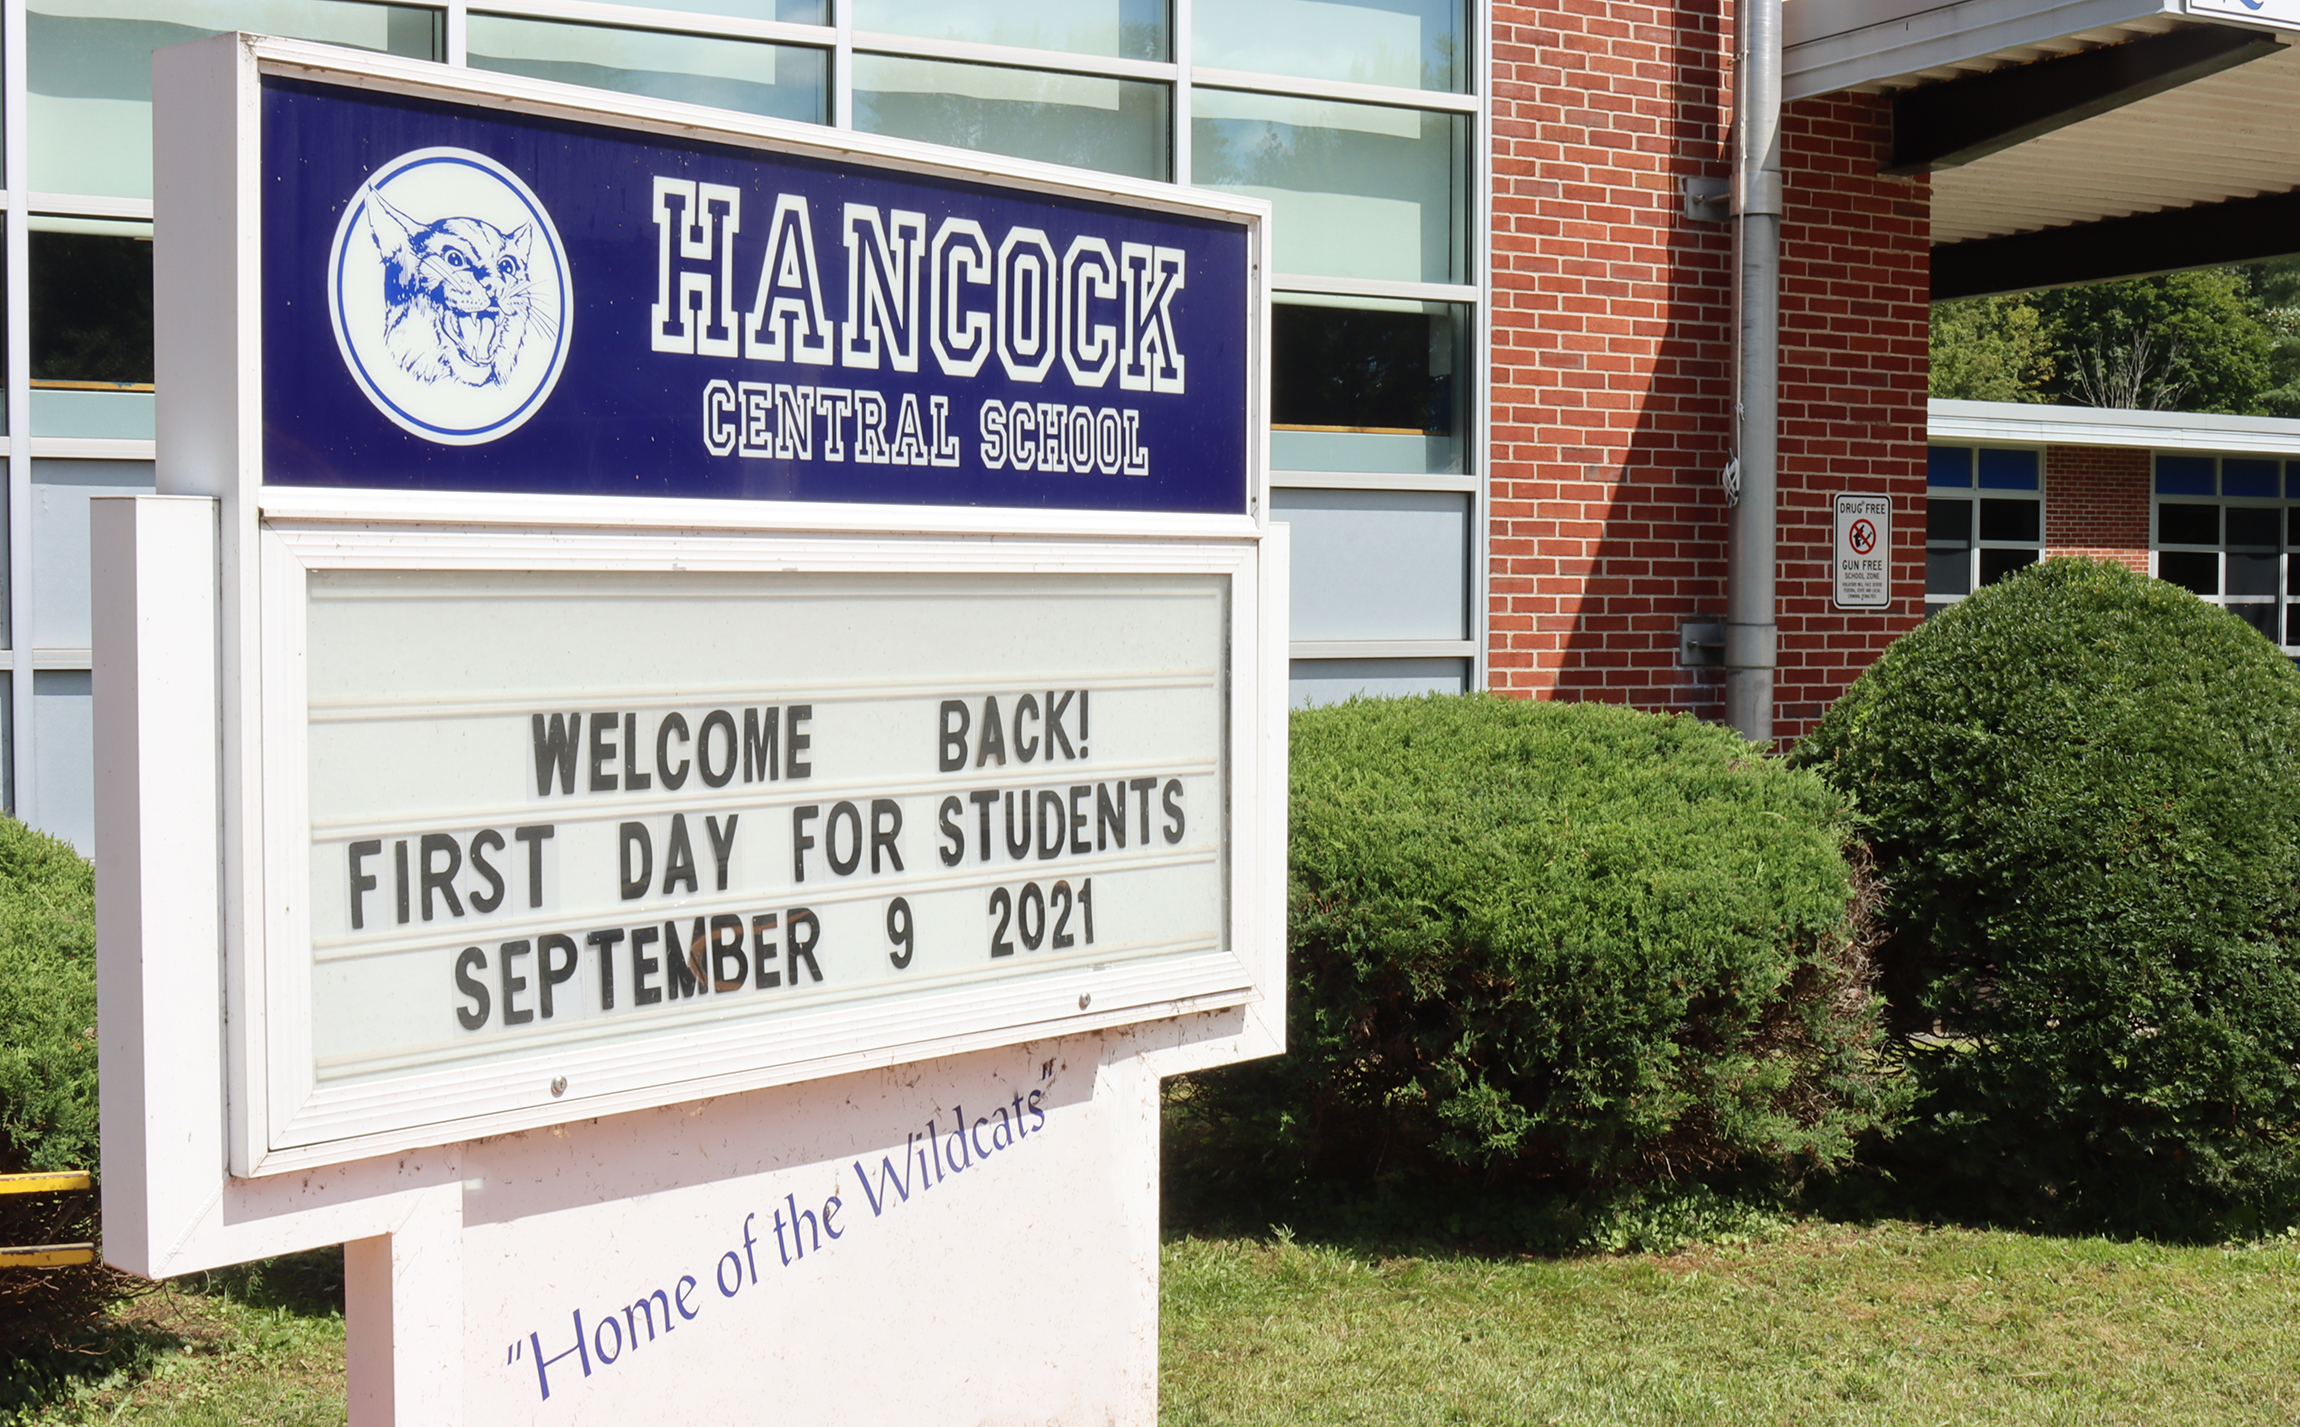 Hancock sign first day of school (9/2021)